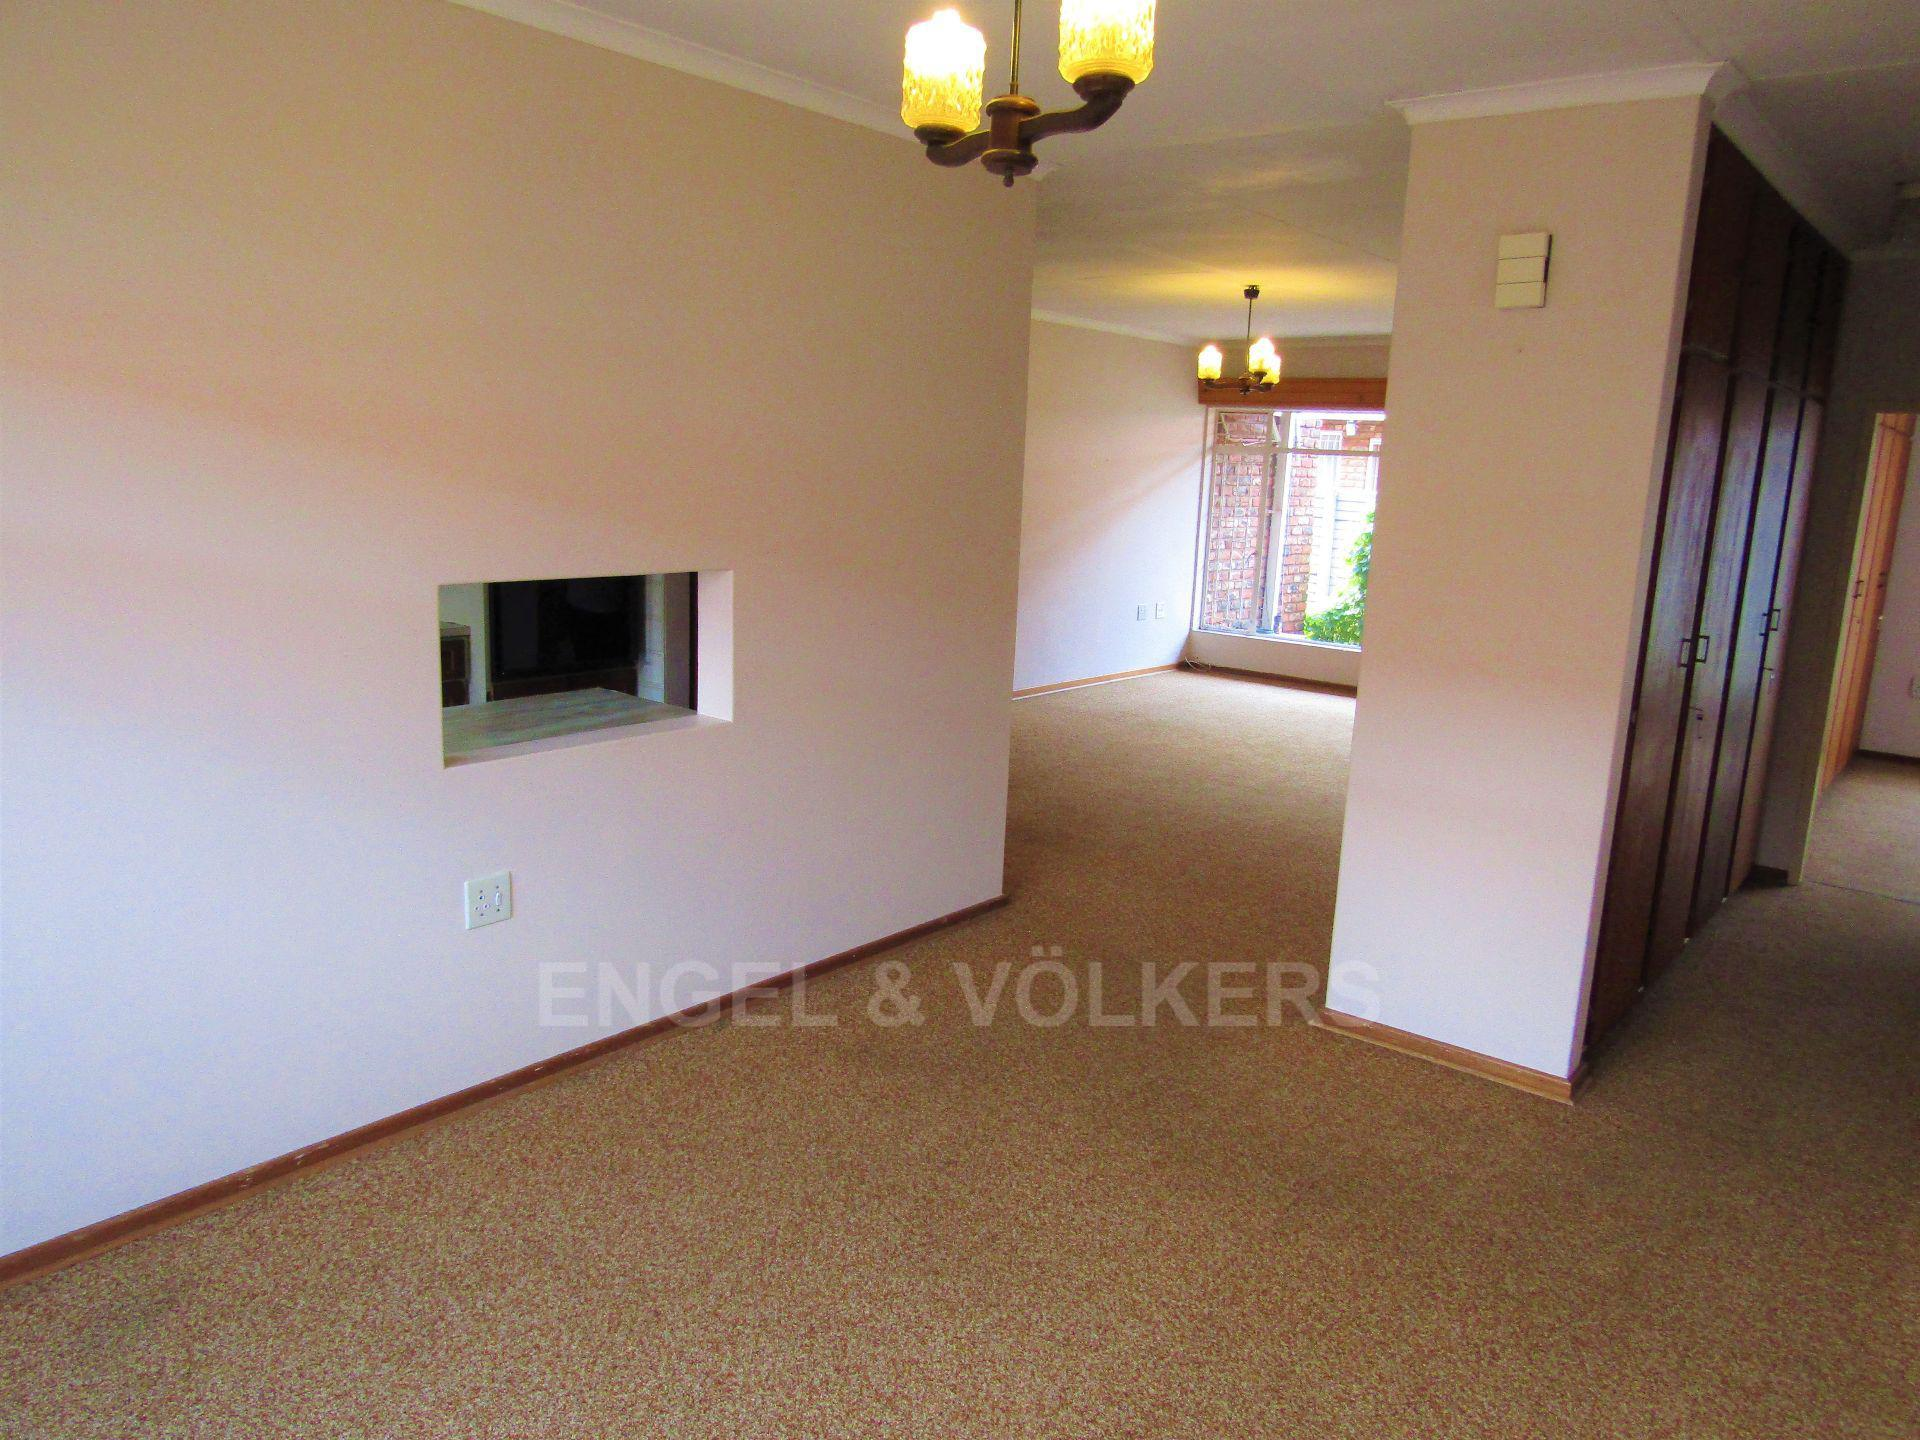 Potchefstroom Central property for sale. Ref No: 13459099. Picture no 5